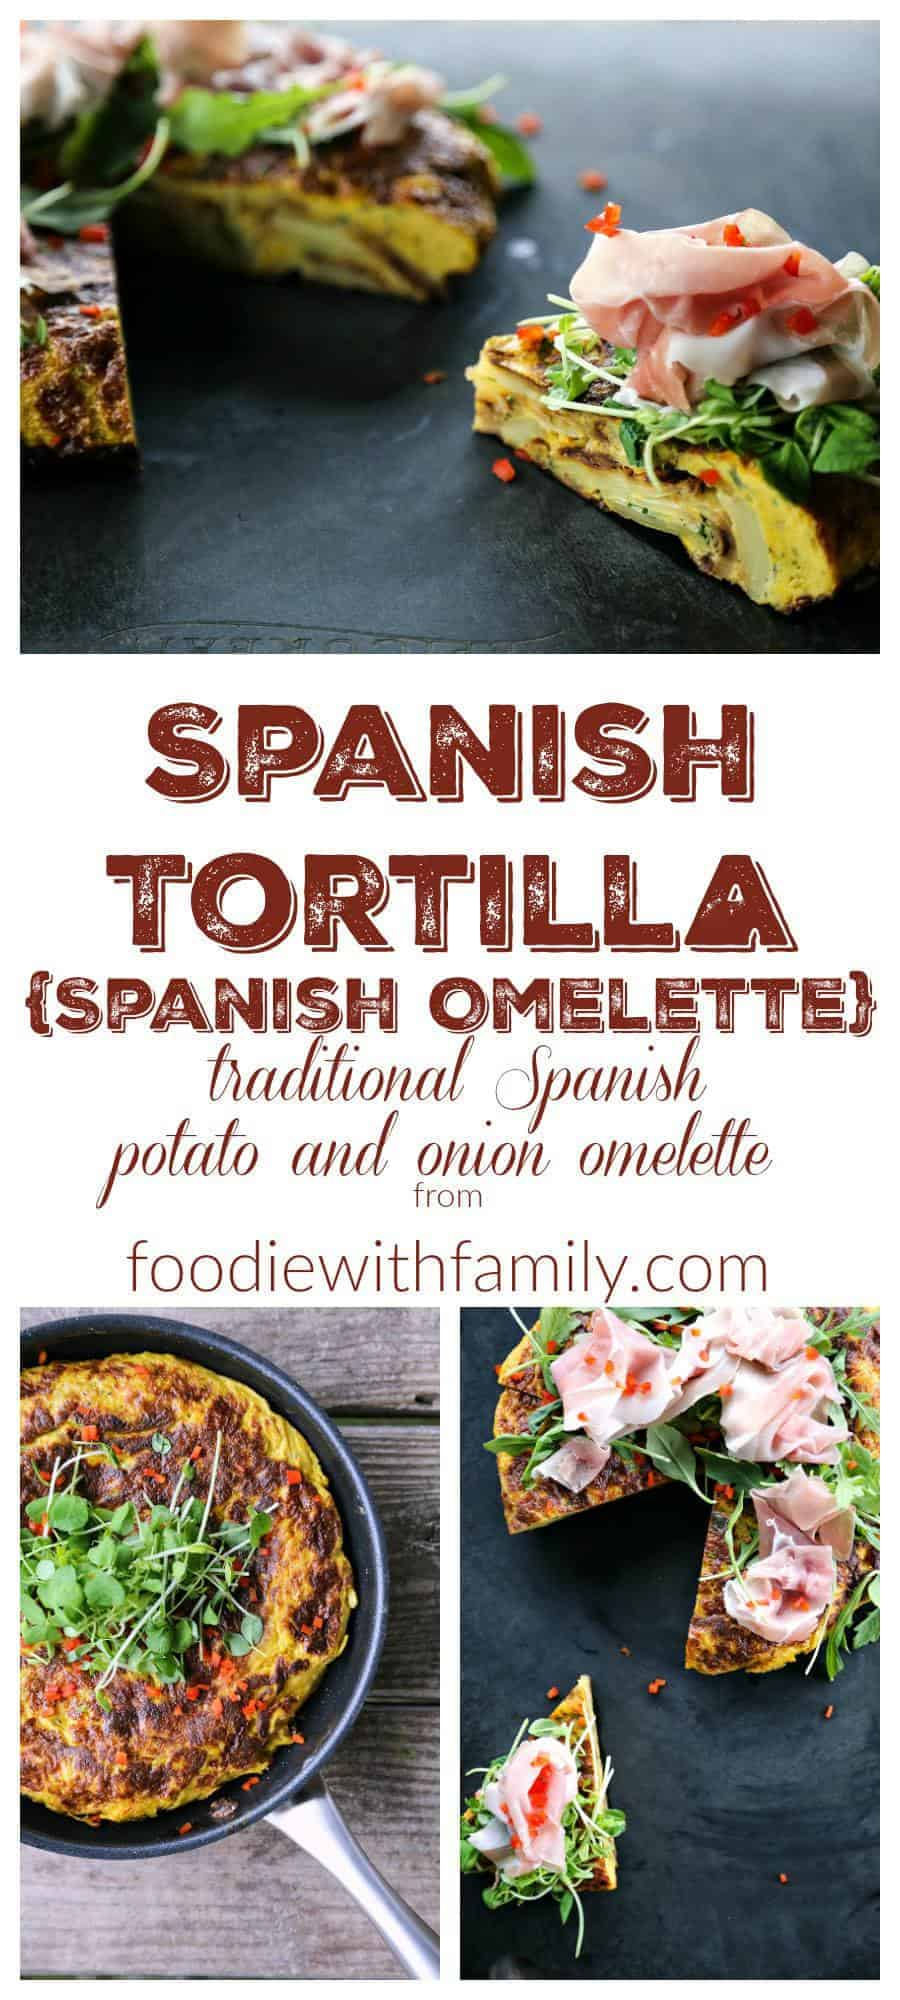 Spanish-Tortilla-Spanish-Omelette-Collage